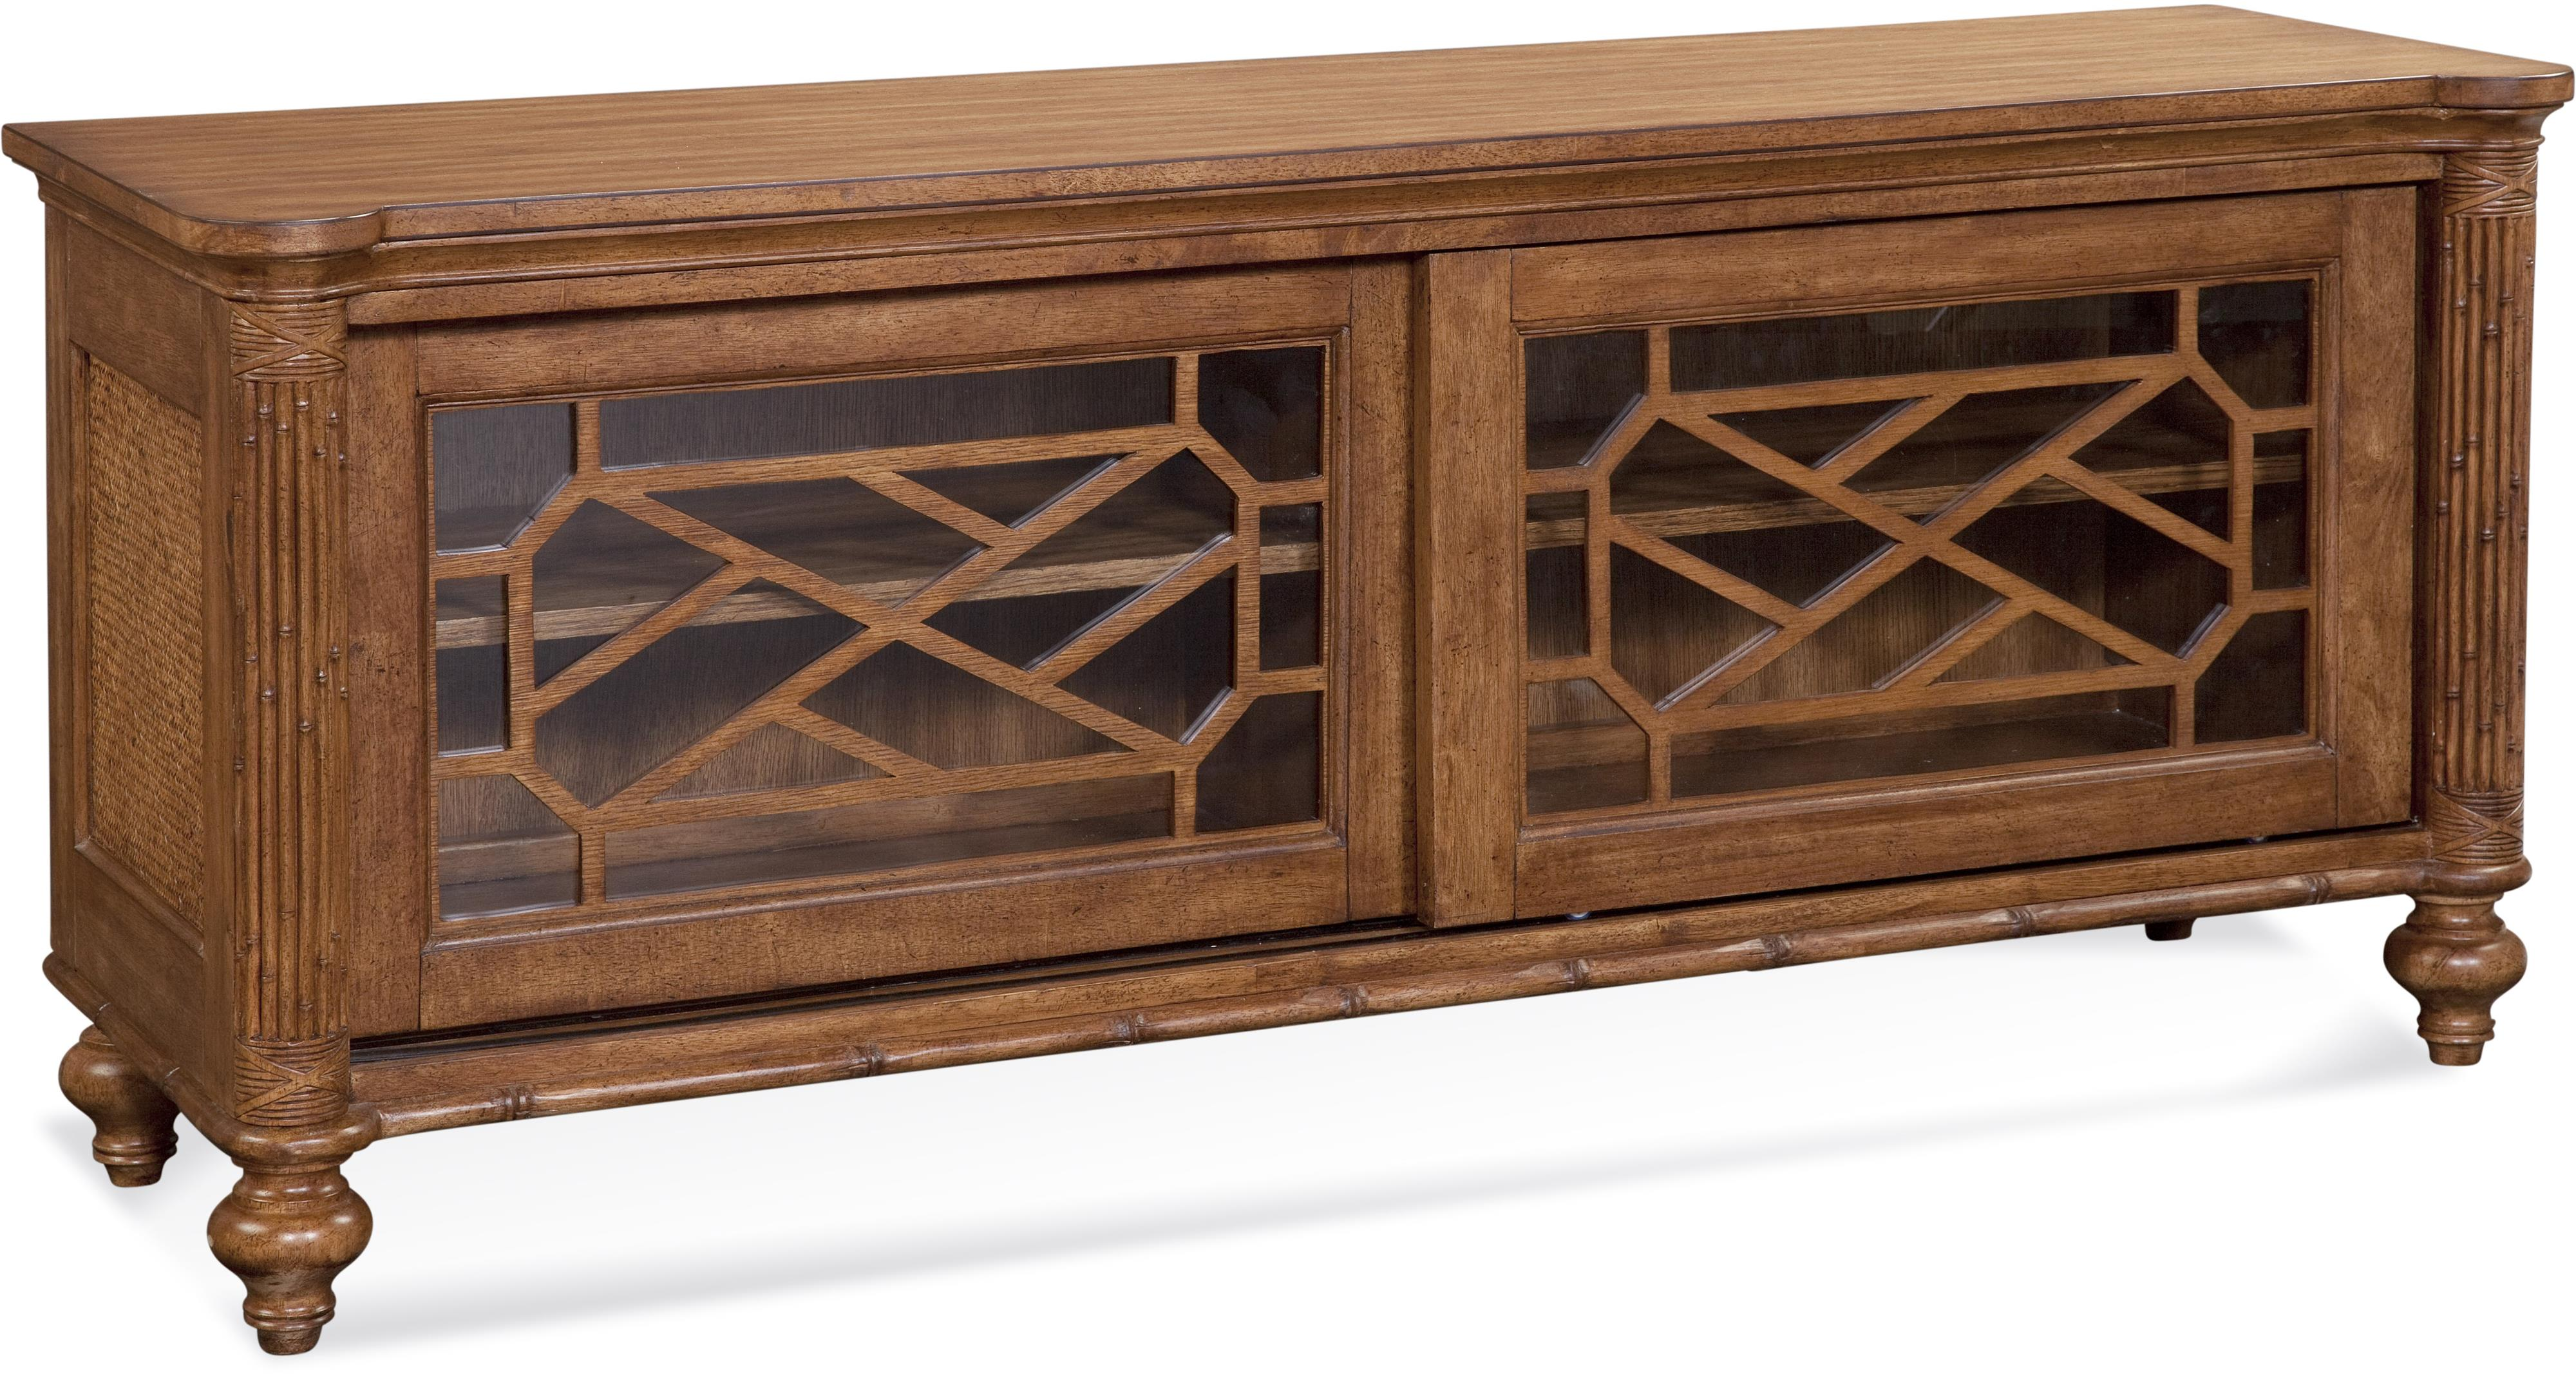 Lacquer Craft USA Paradise Bay Media Console - Item Number: 9005-260 PARADISE BAY